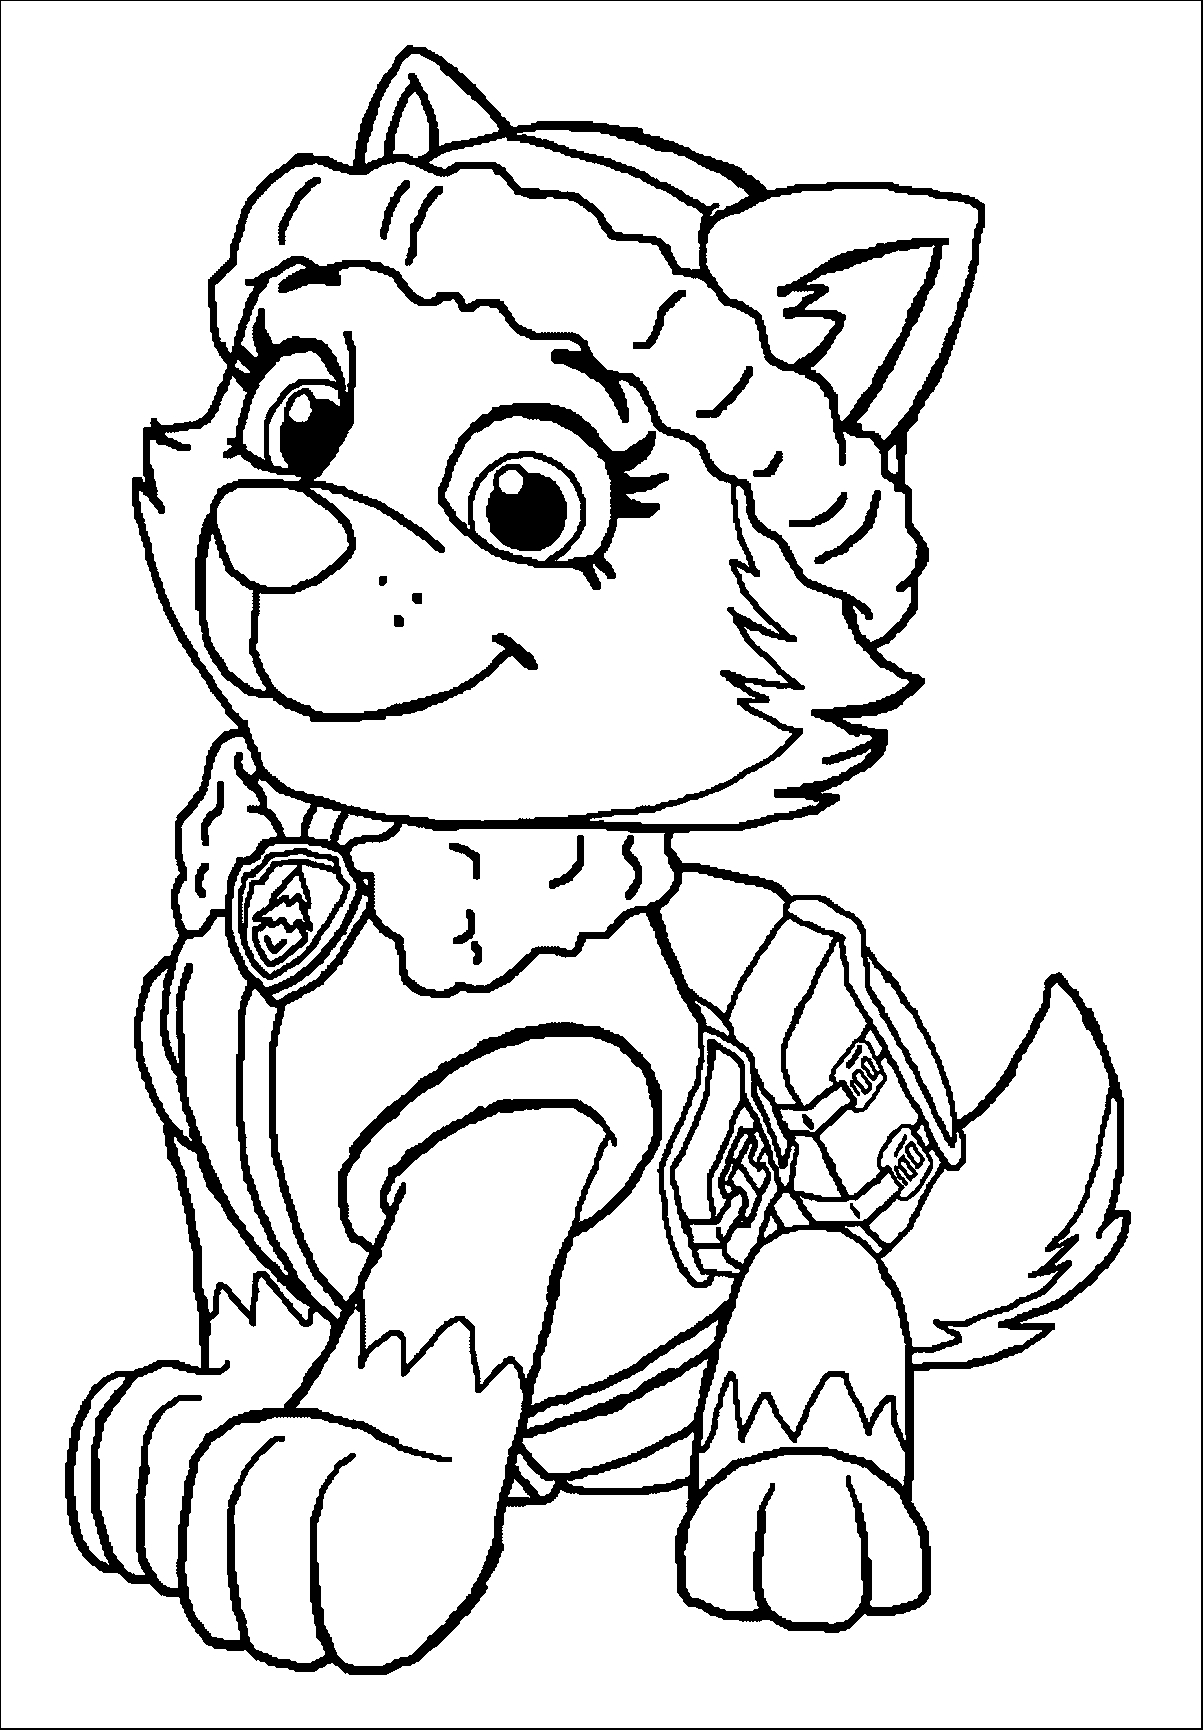 free paw patrol coloring pages - paw patrol caracters